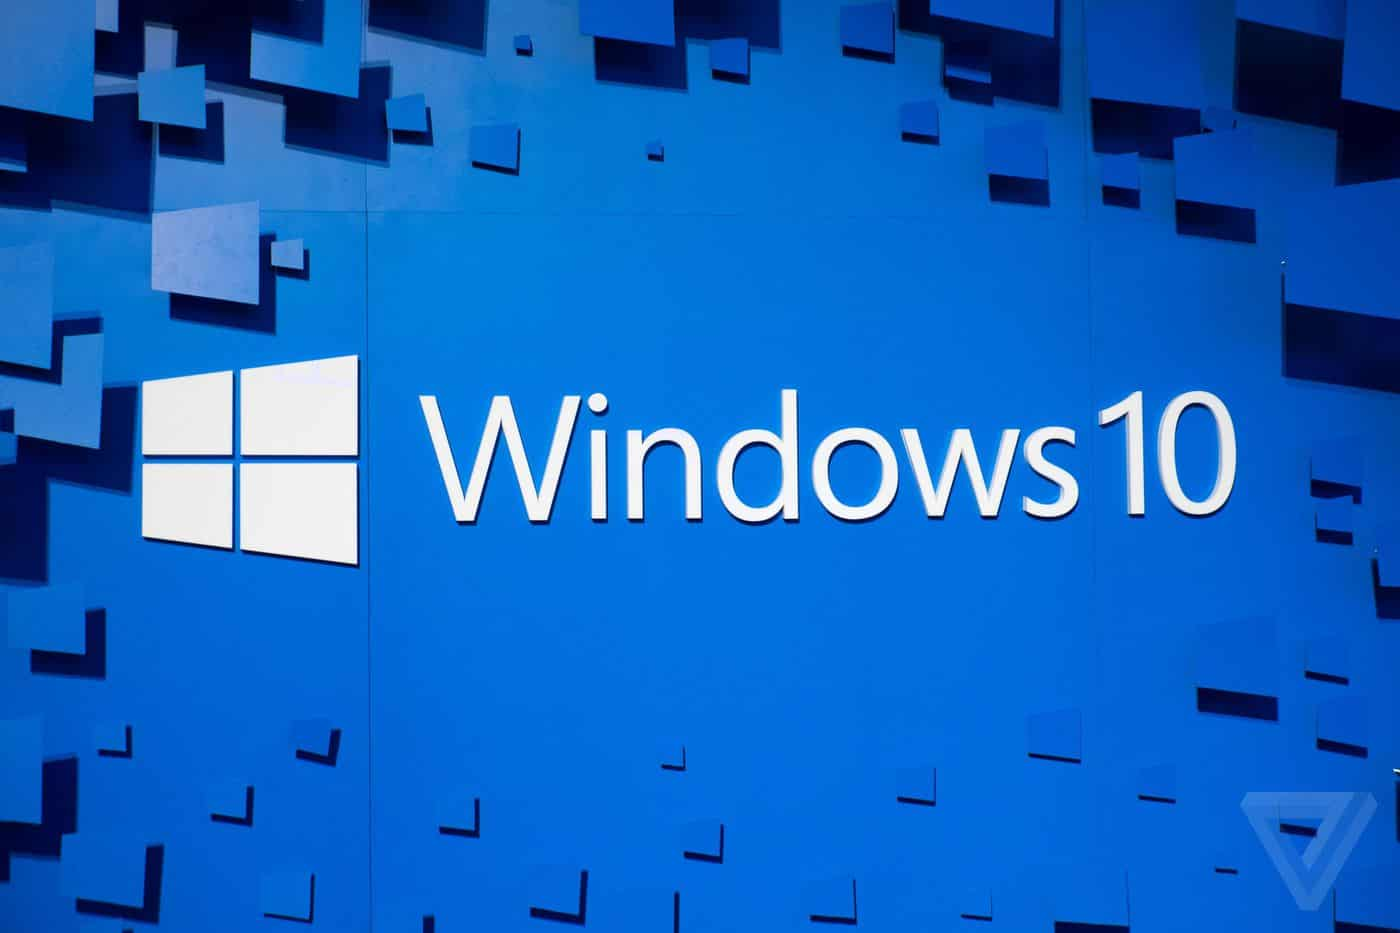 windows 10 edition features